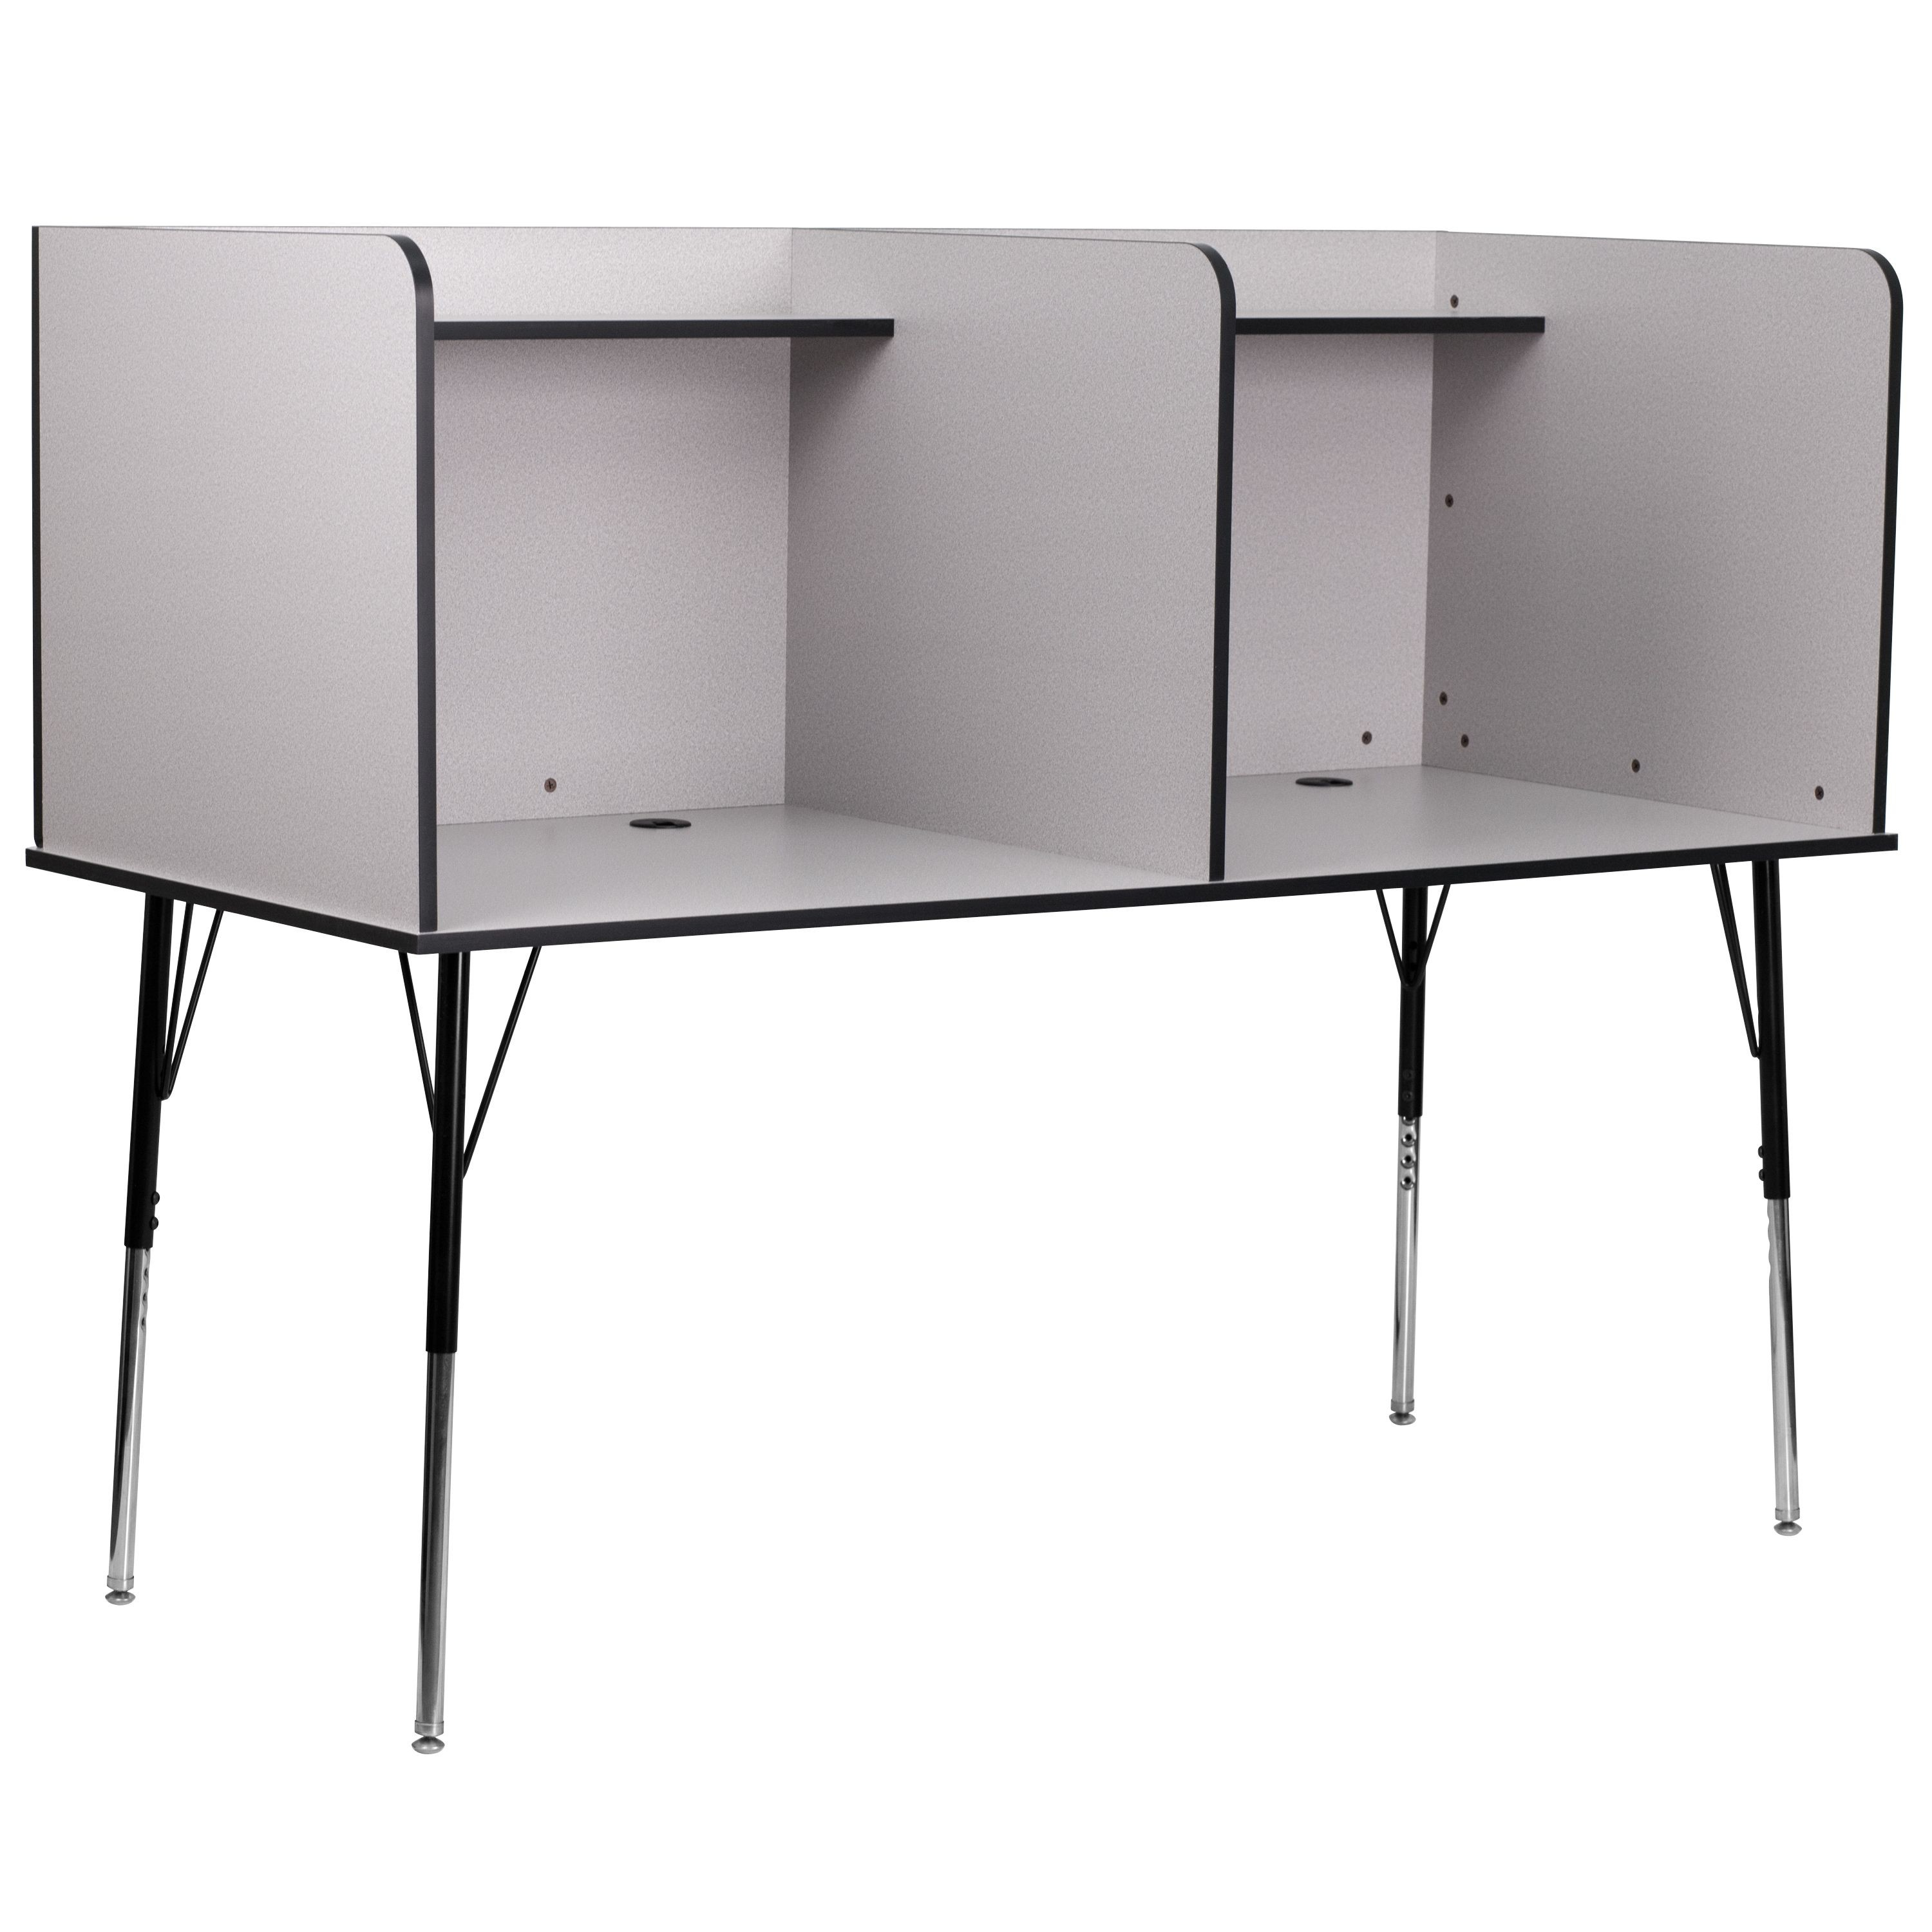 Flash Furniture MT-M6222-GRY-DBL-GG Double Wide Study Carrel with Adjustable Legs and Top Shelf/Nebula Grey Finish